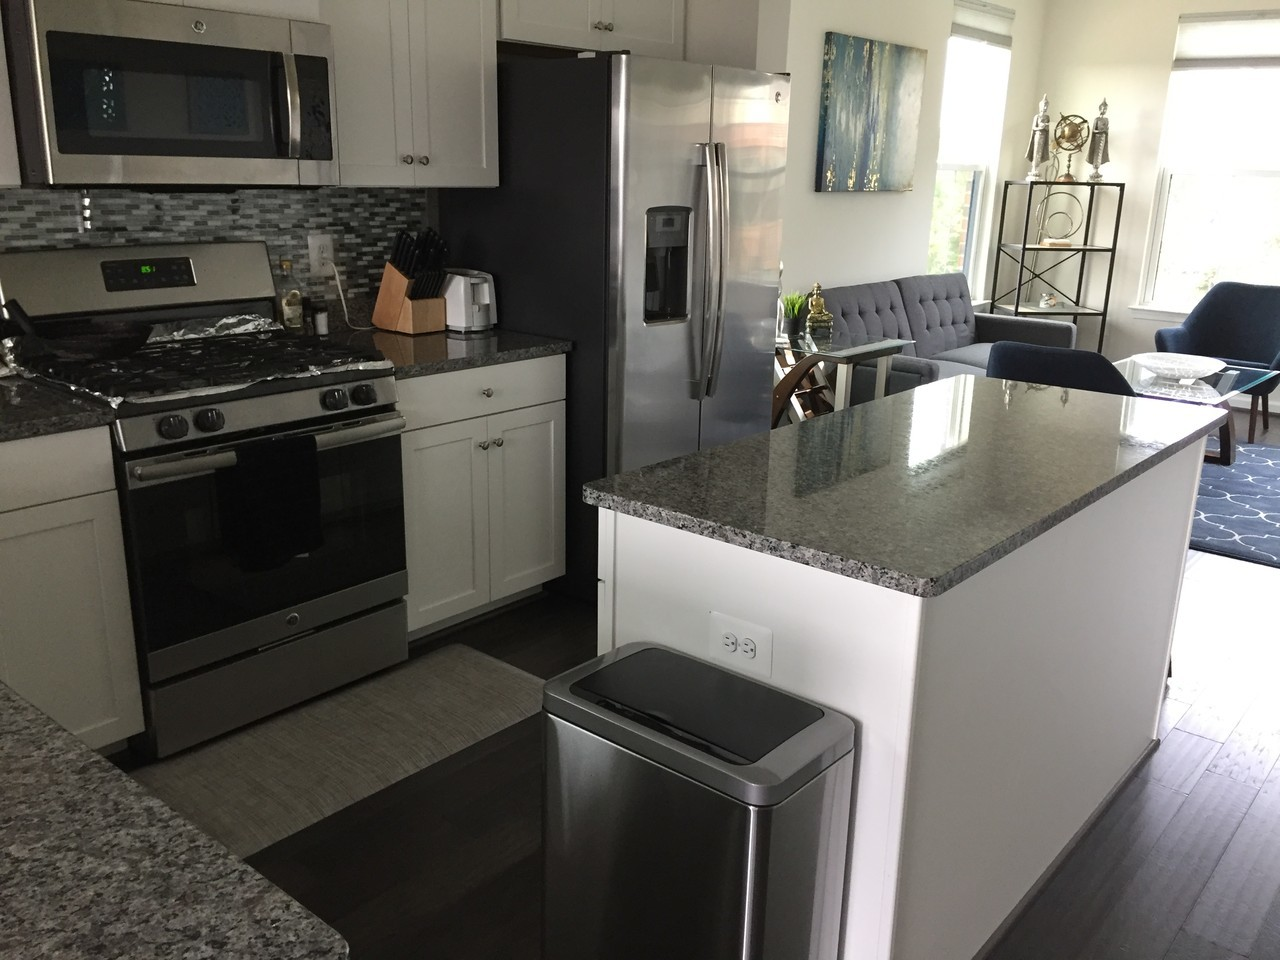 3 Bedroom, 3 Full Bathroom near Maryland University